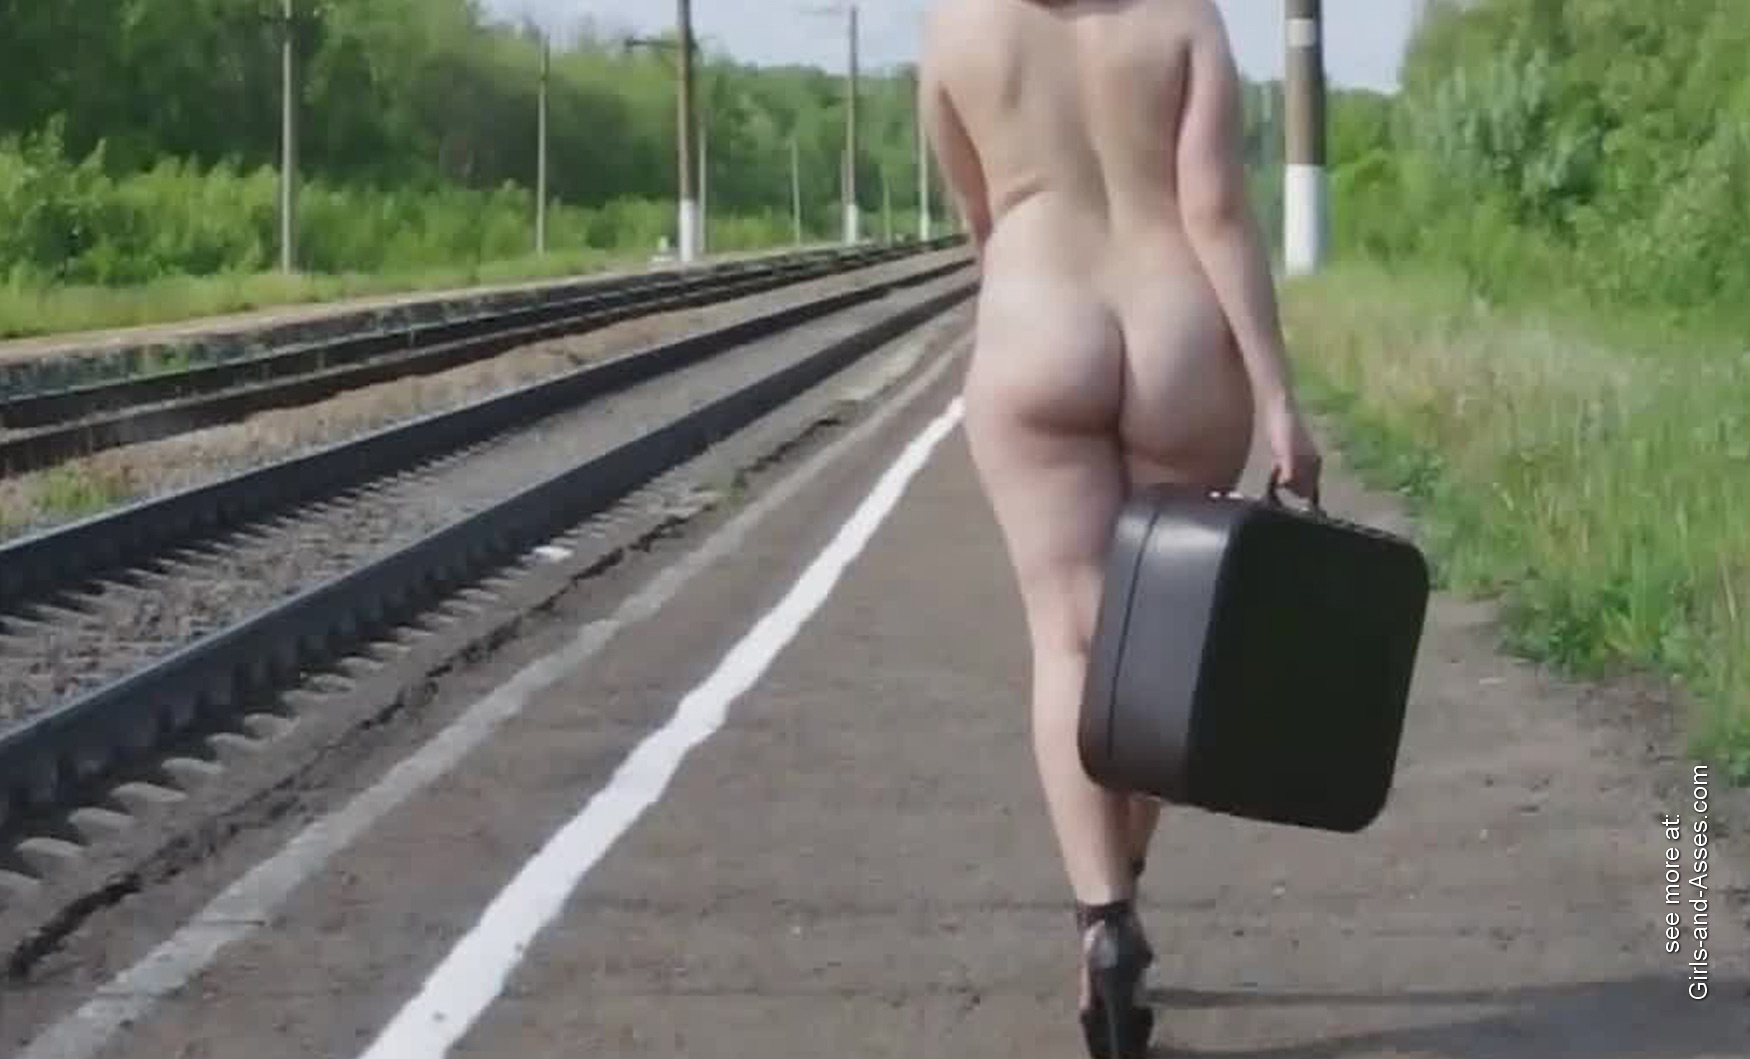 hot girl naked on the train tracks picture 00256